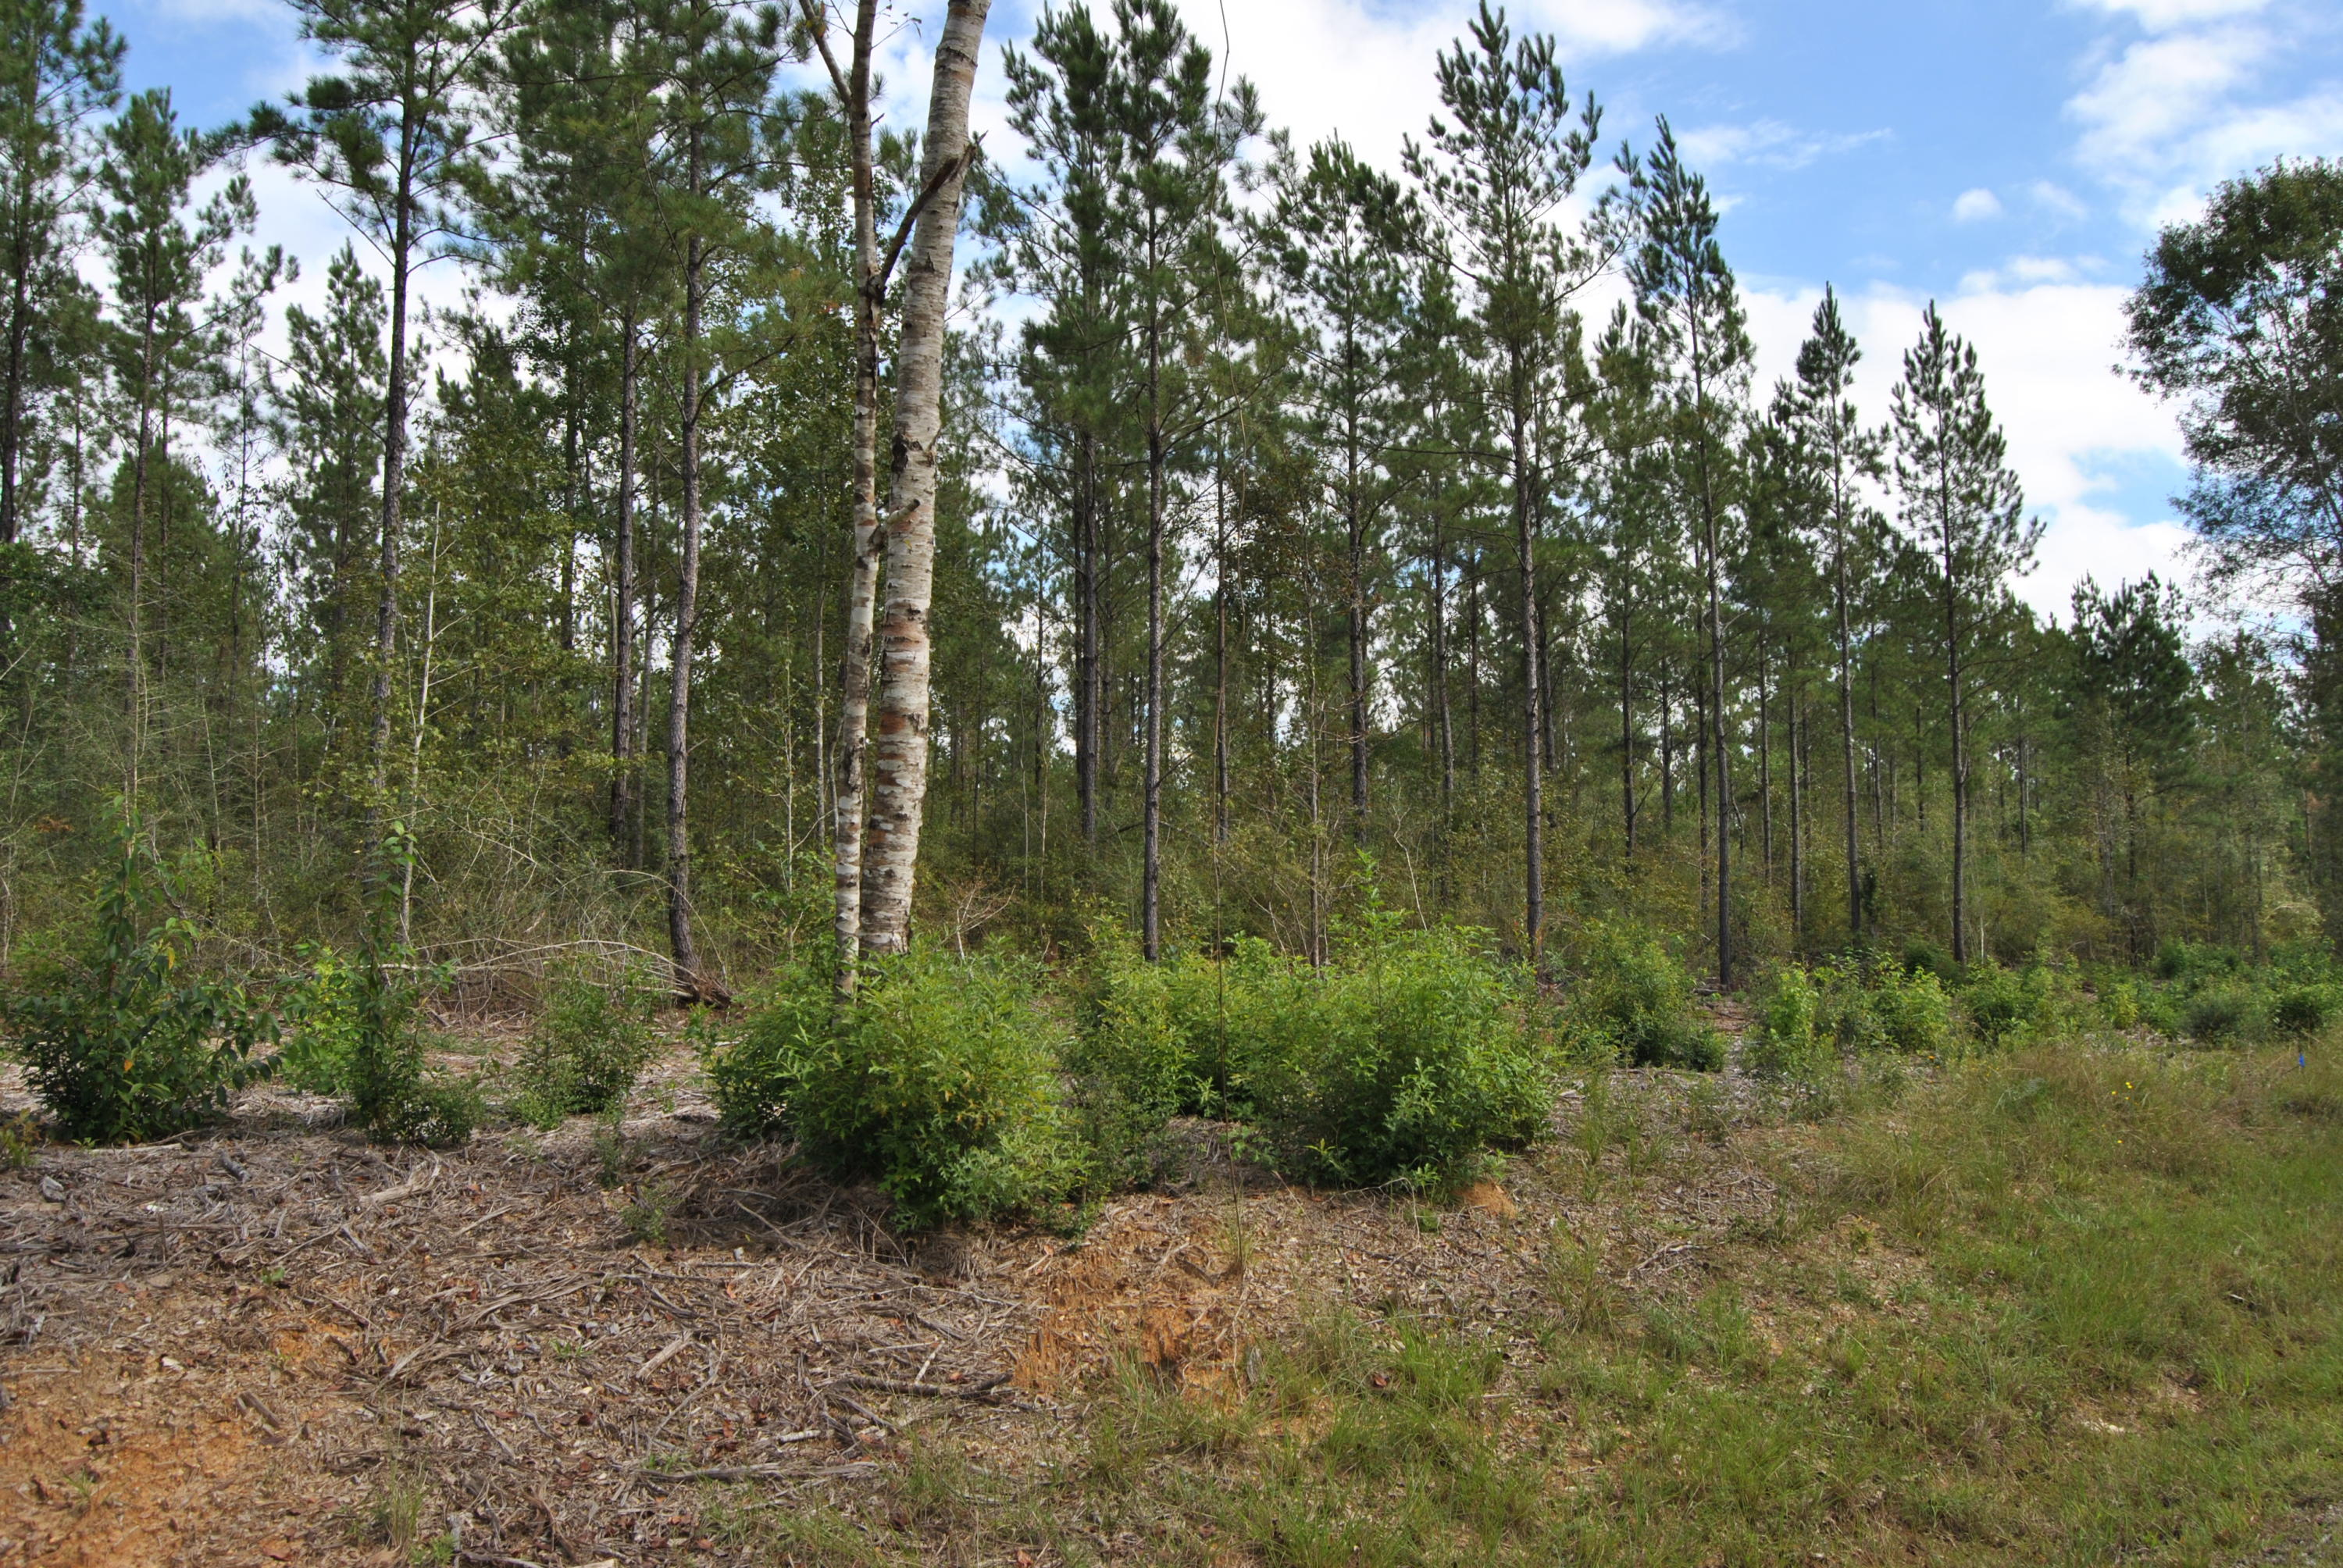 Reeves land for sale,  Camp Pearl Loop North, Reeves LA - $66,500